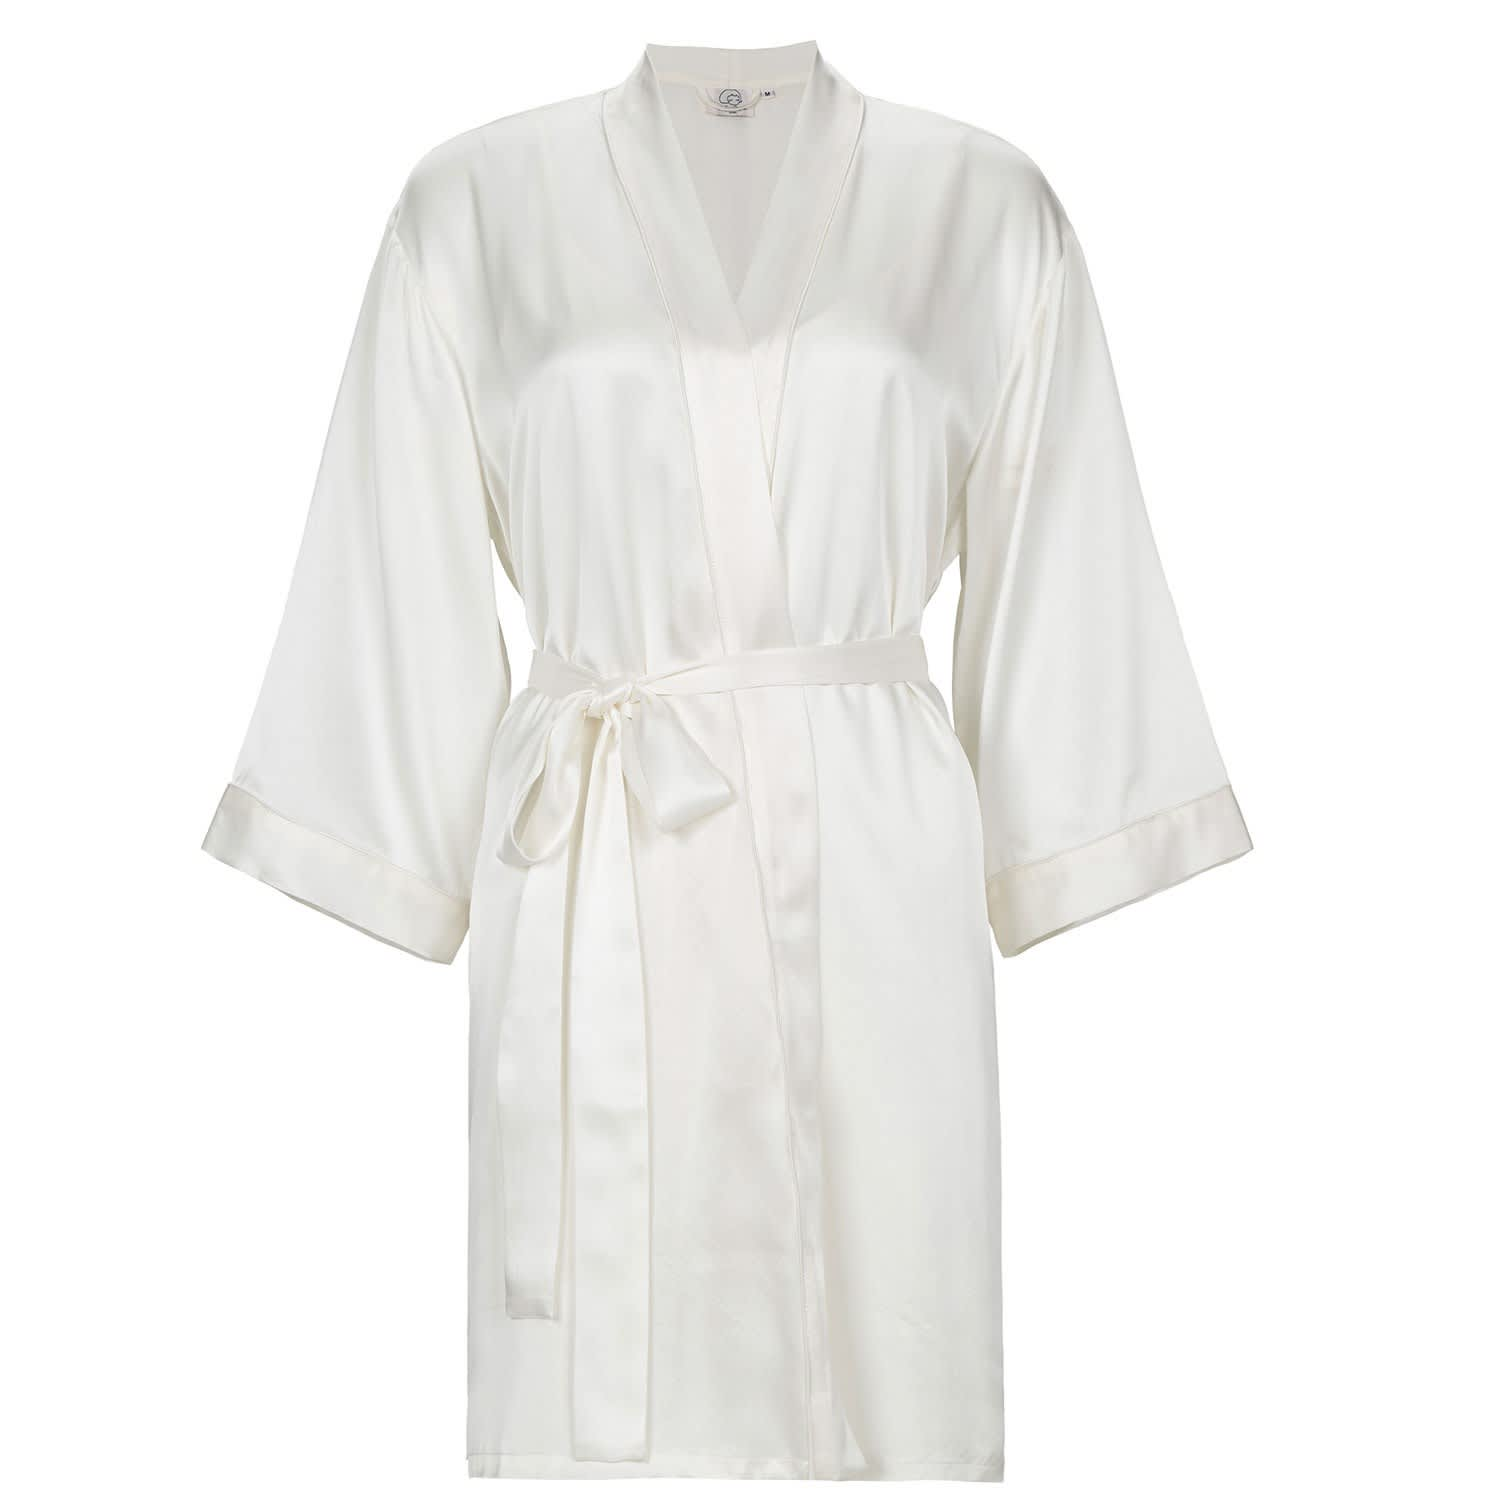 Classic Women Silk Wedding Robe White Not Just Pajama Wolf Badger